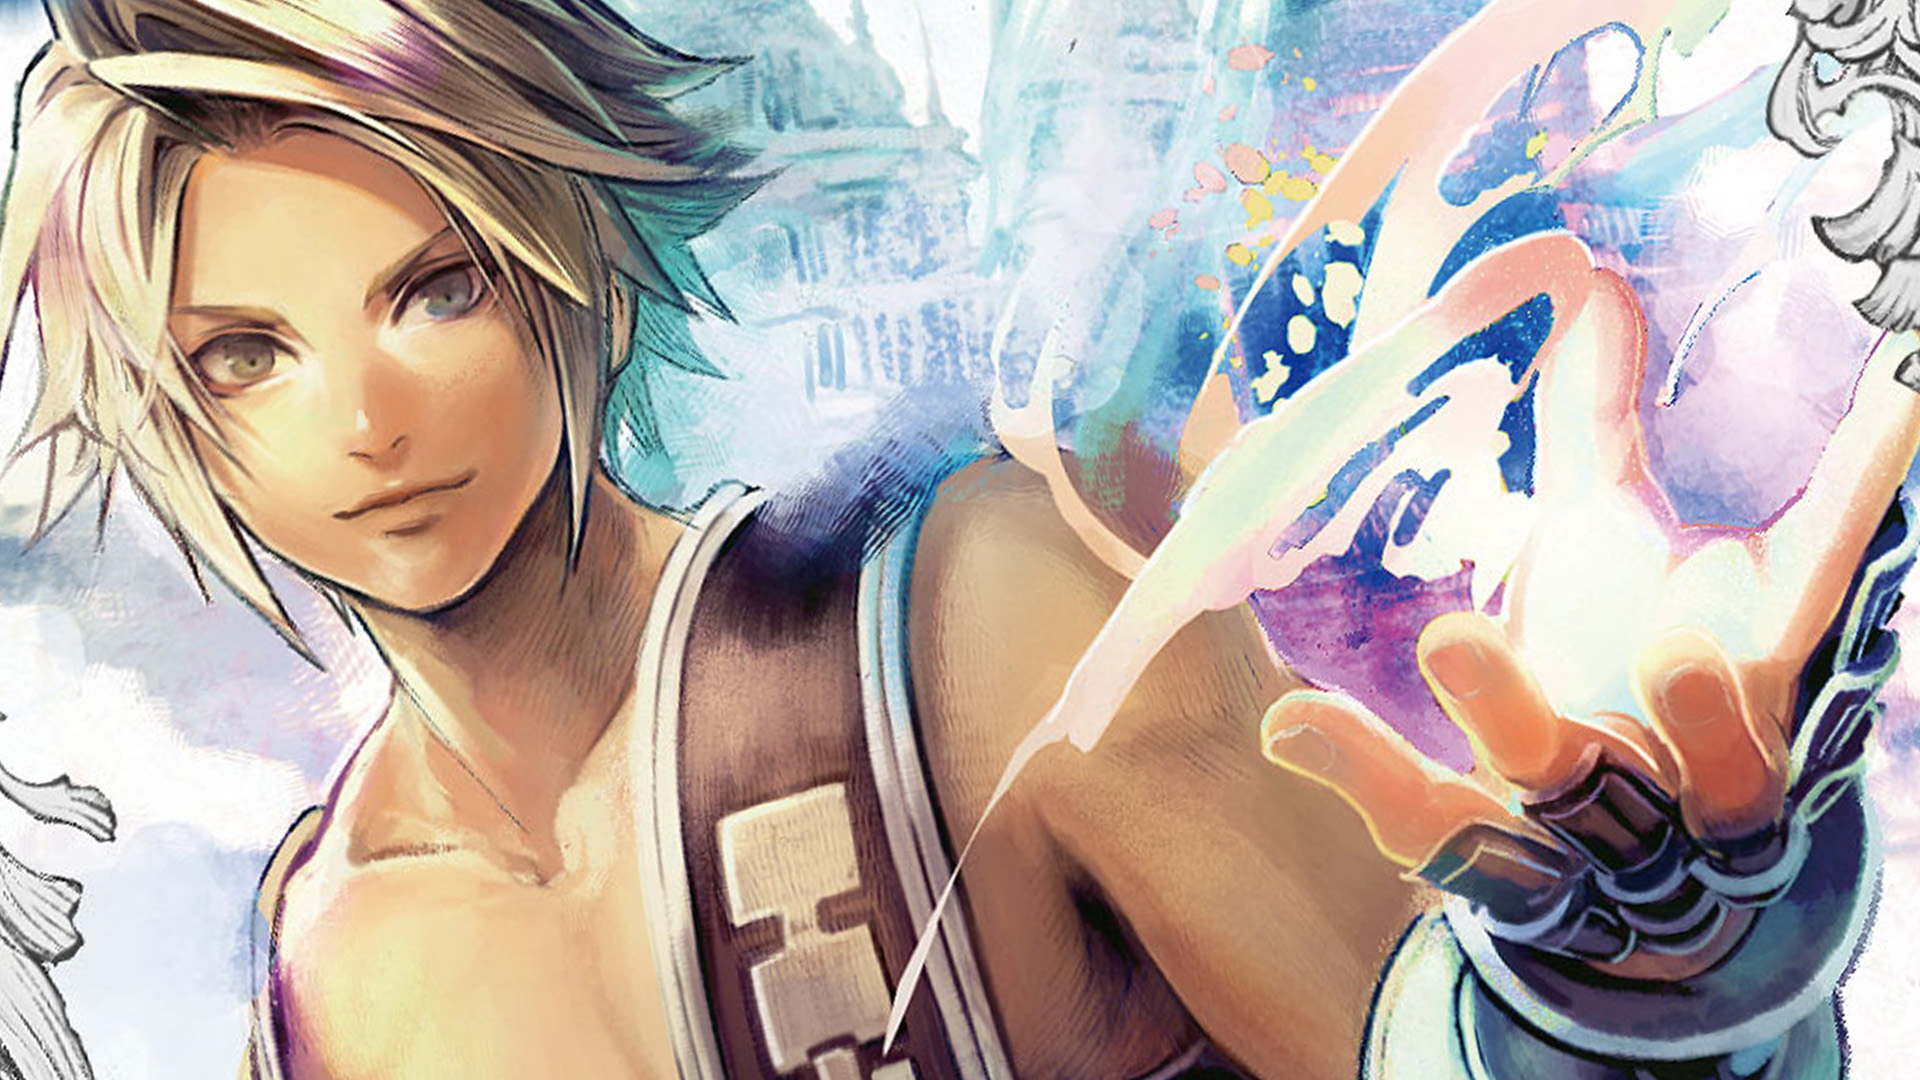 Vaan from FFXII with magic coming from his hand